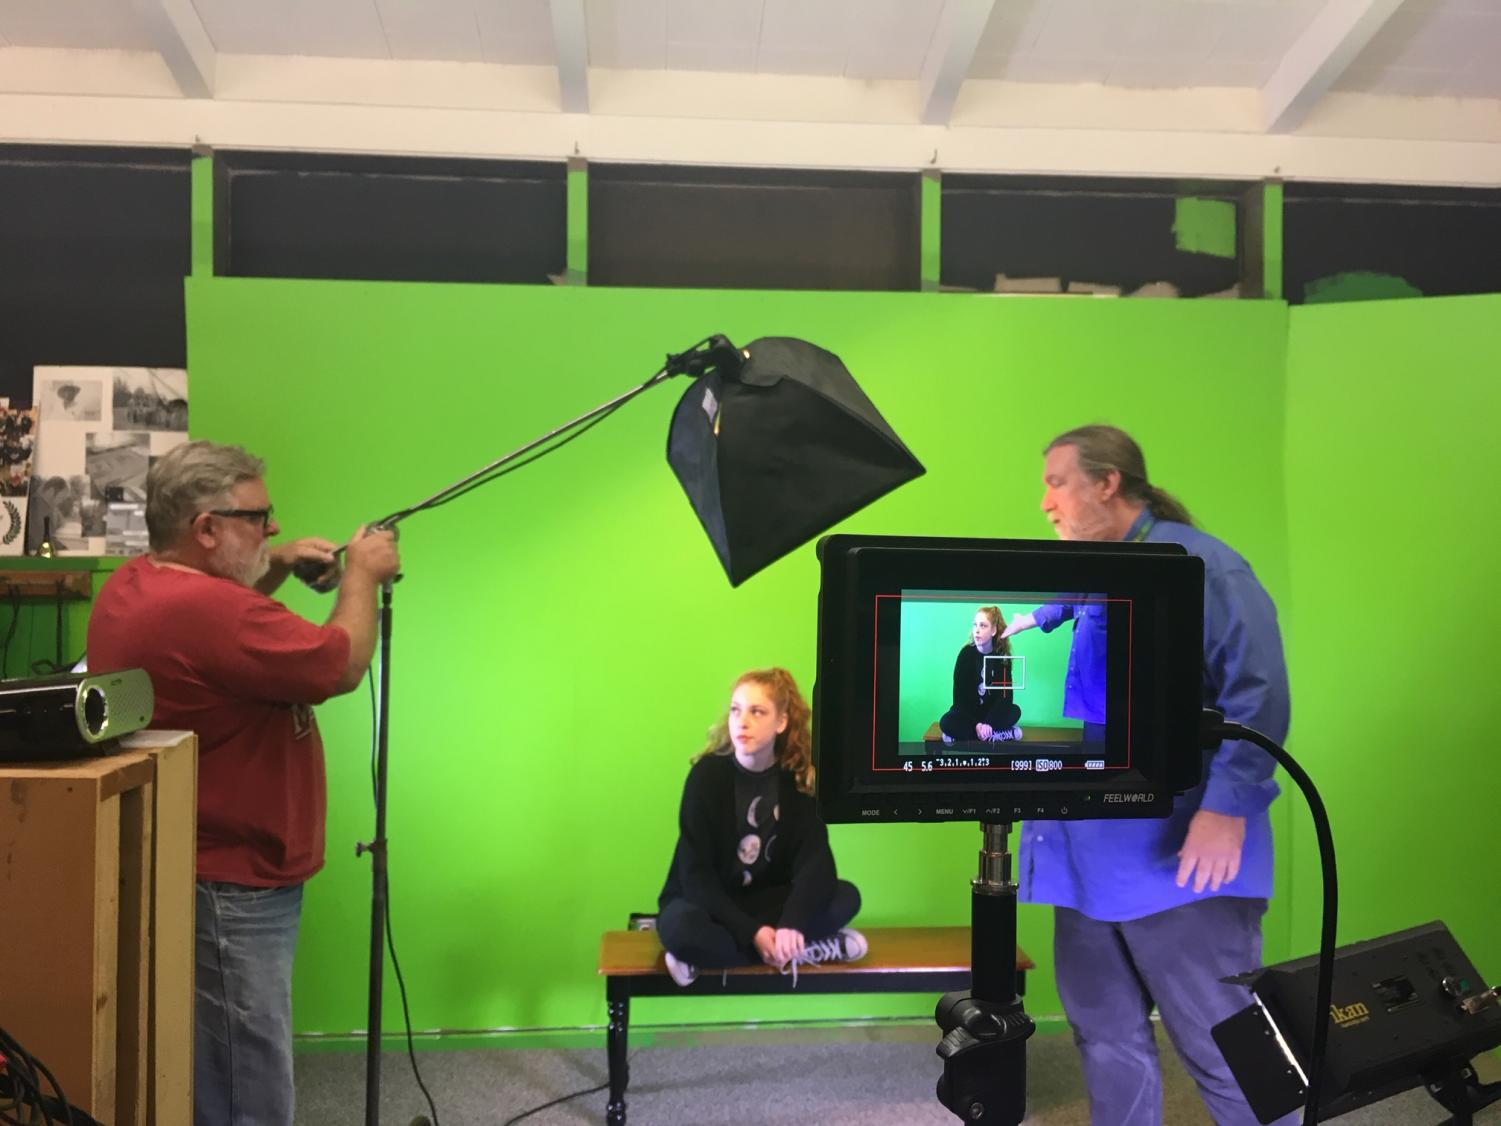 Junior, Cassidy Noonan is on set for the upcoming thiller web show, Shivers. This is Noonan's first time acting on camera in a pre-filmed environment. She enjoys witnessing what goes on behind-the-scenes.